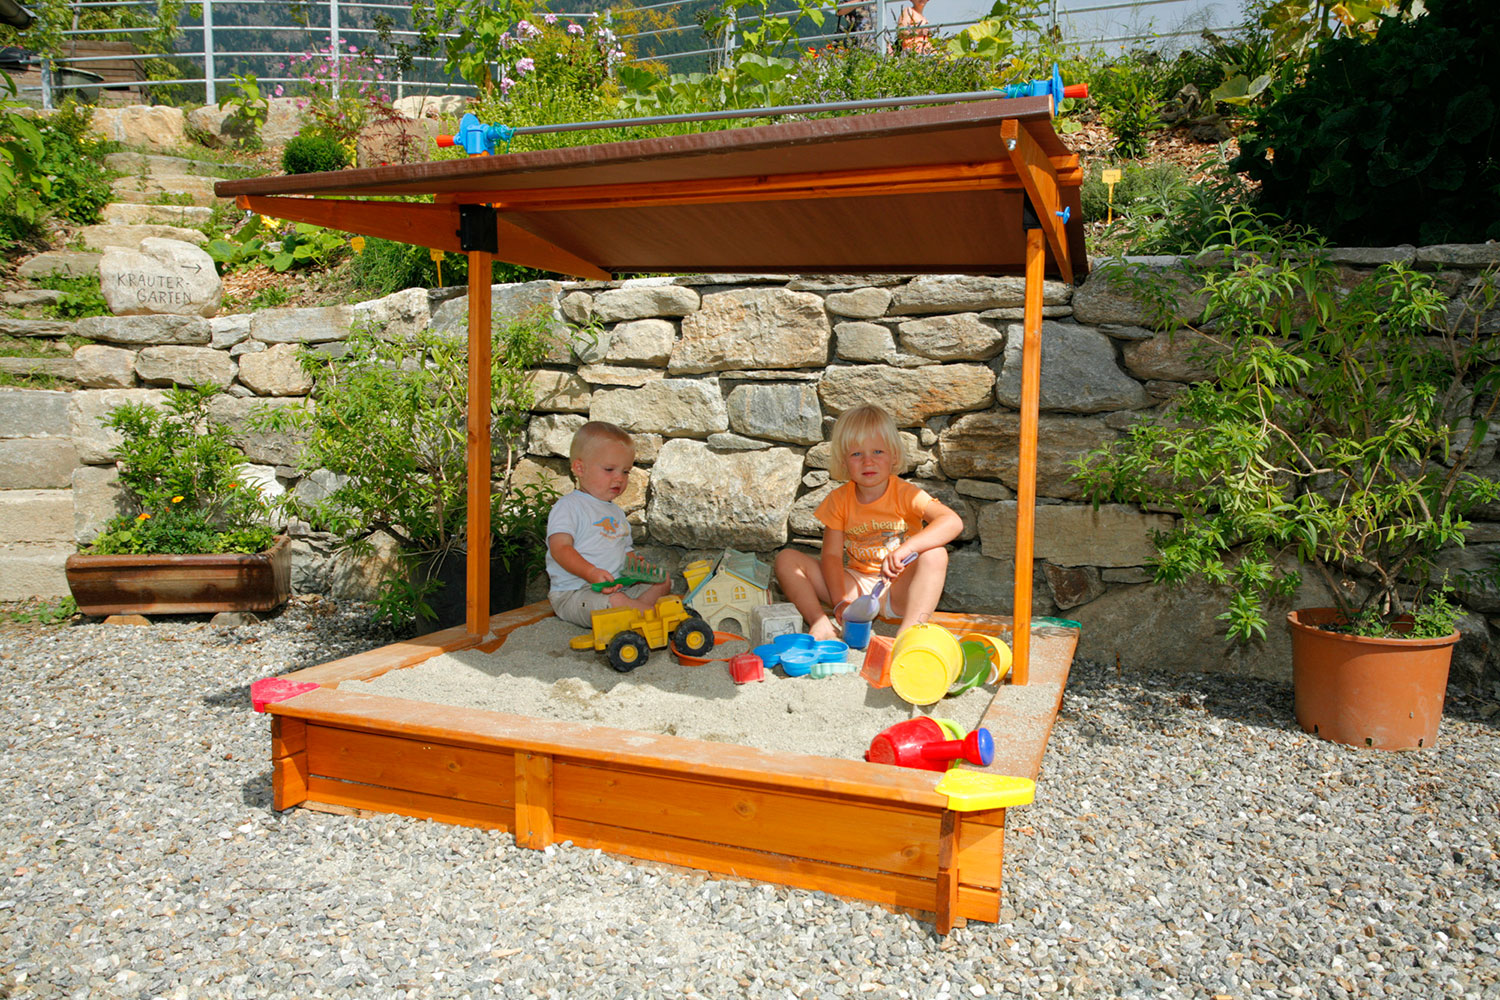 Sandpit for kids